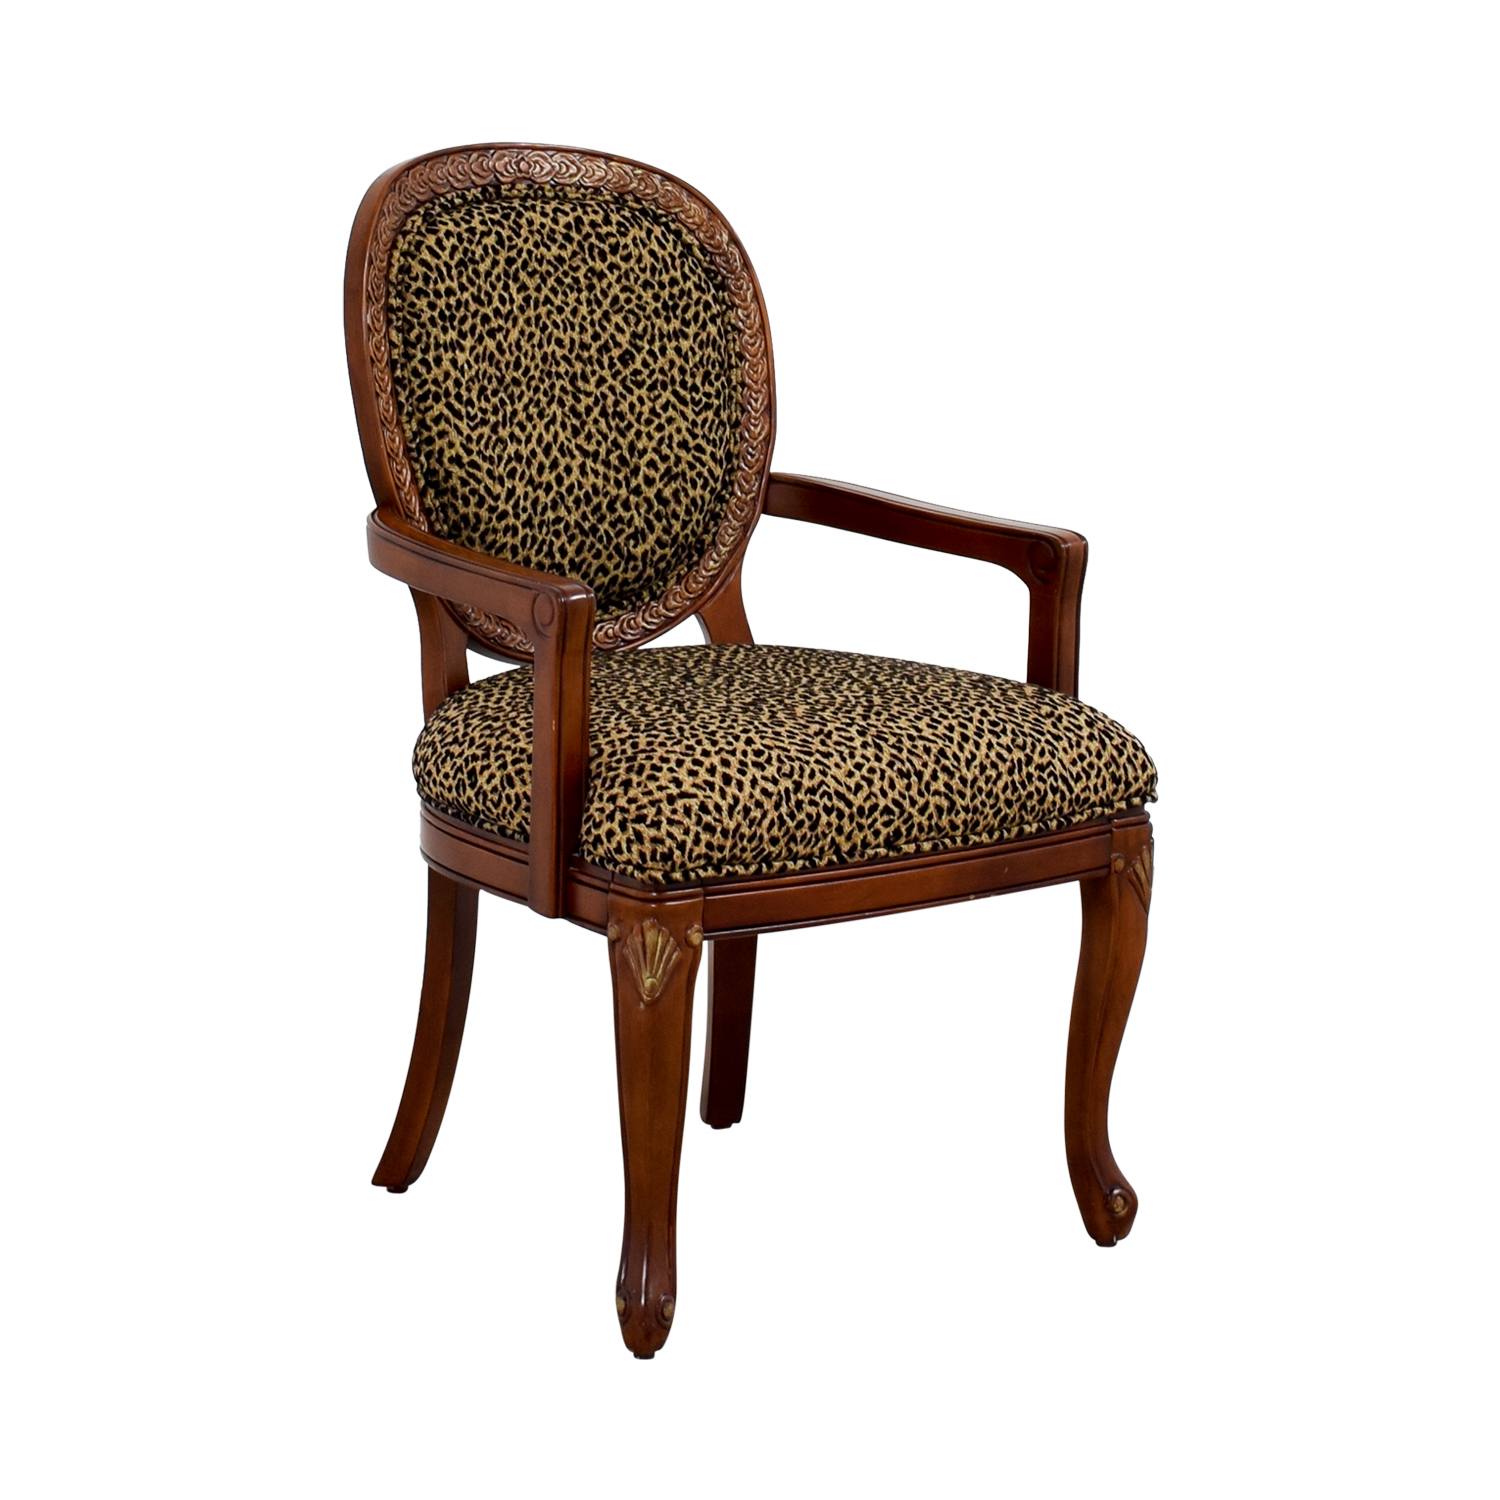 upholstered chairs with wooden arms accent ikea 63 off leopard wood arm chair